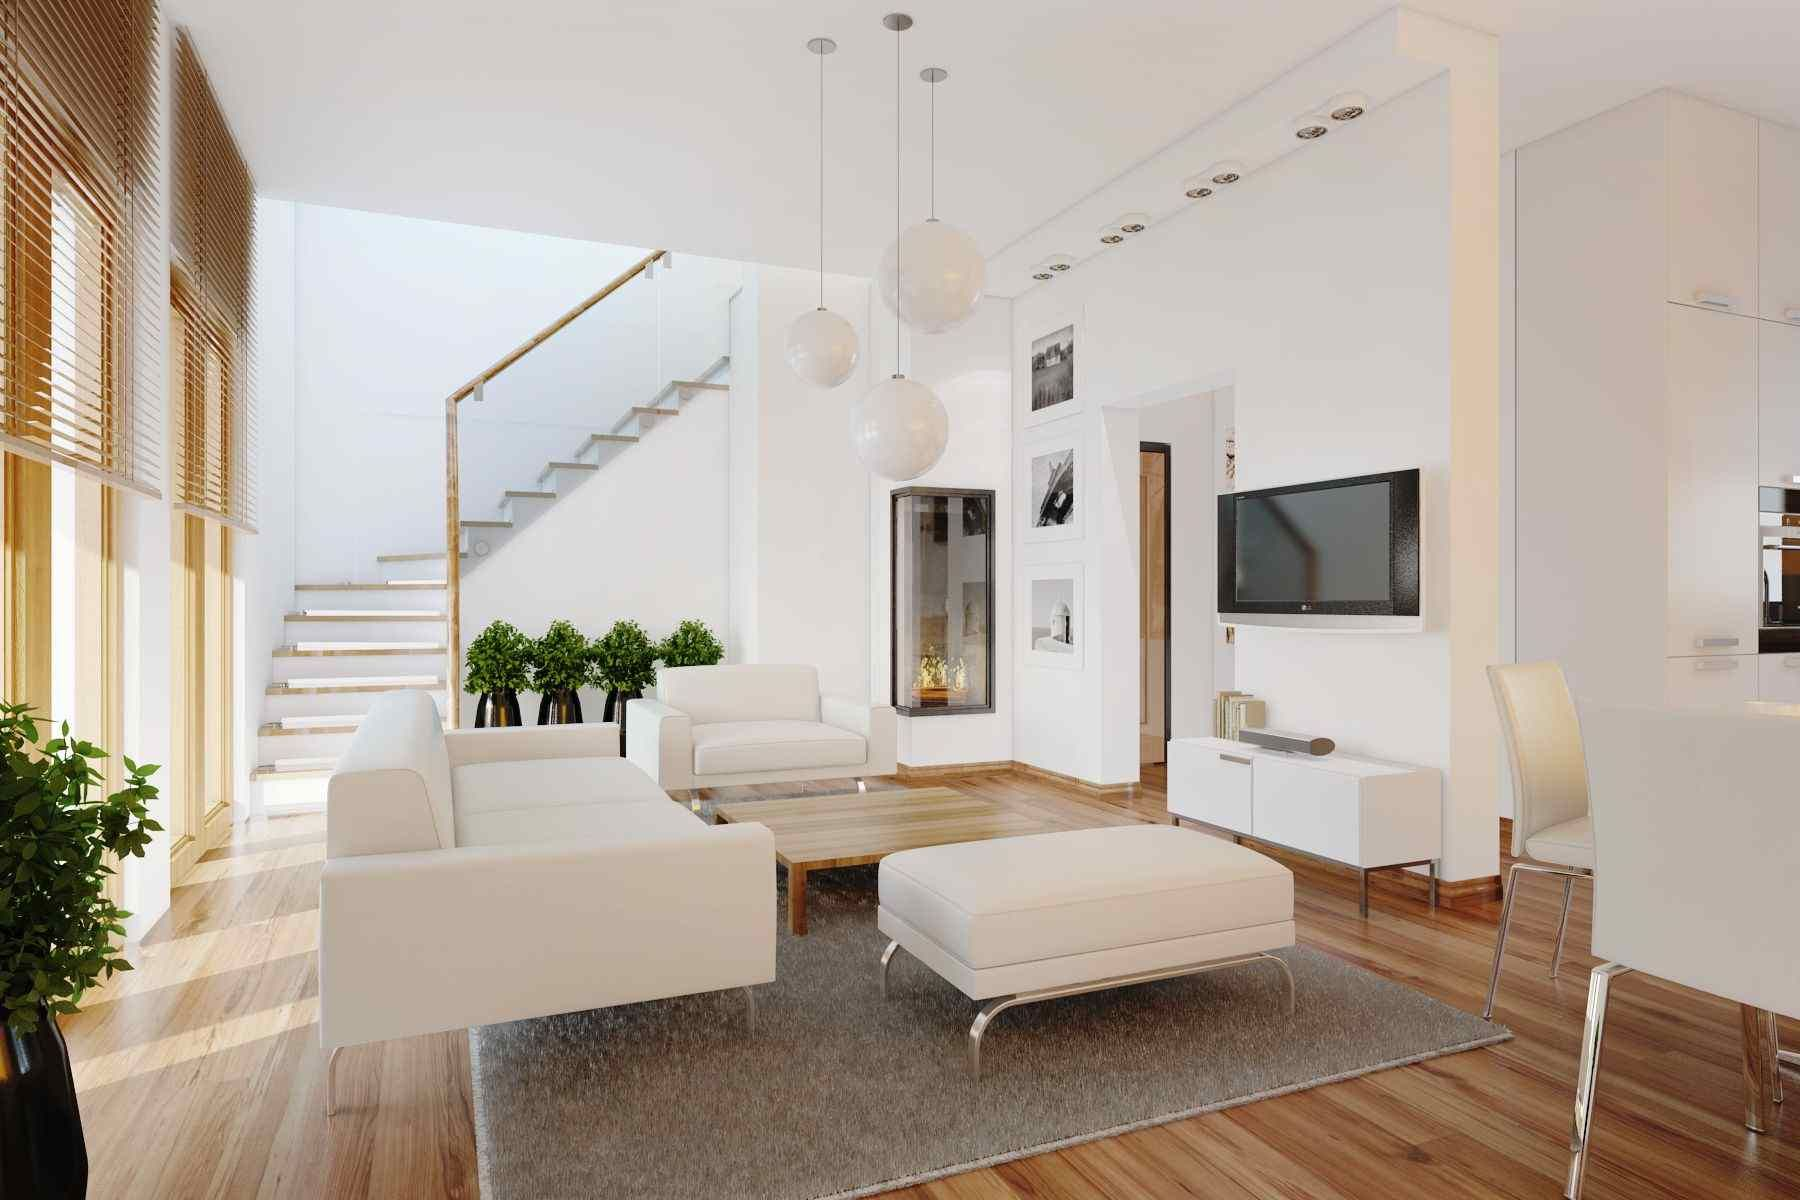 The Perfect Decoration For This Living Room Is The White Sofa. Since It  Comes In